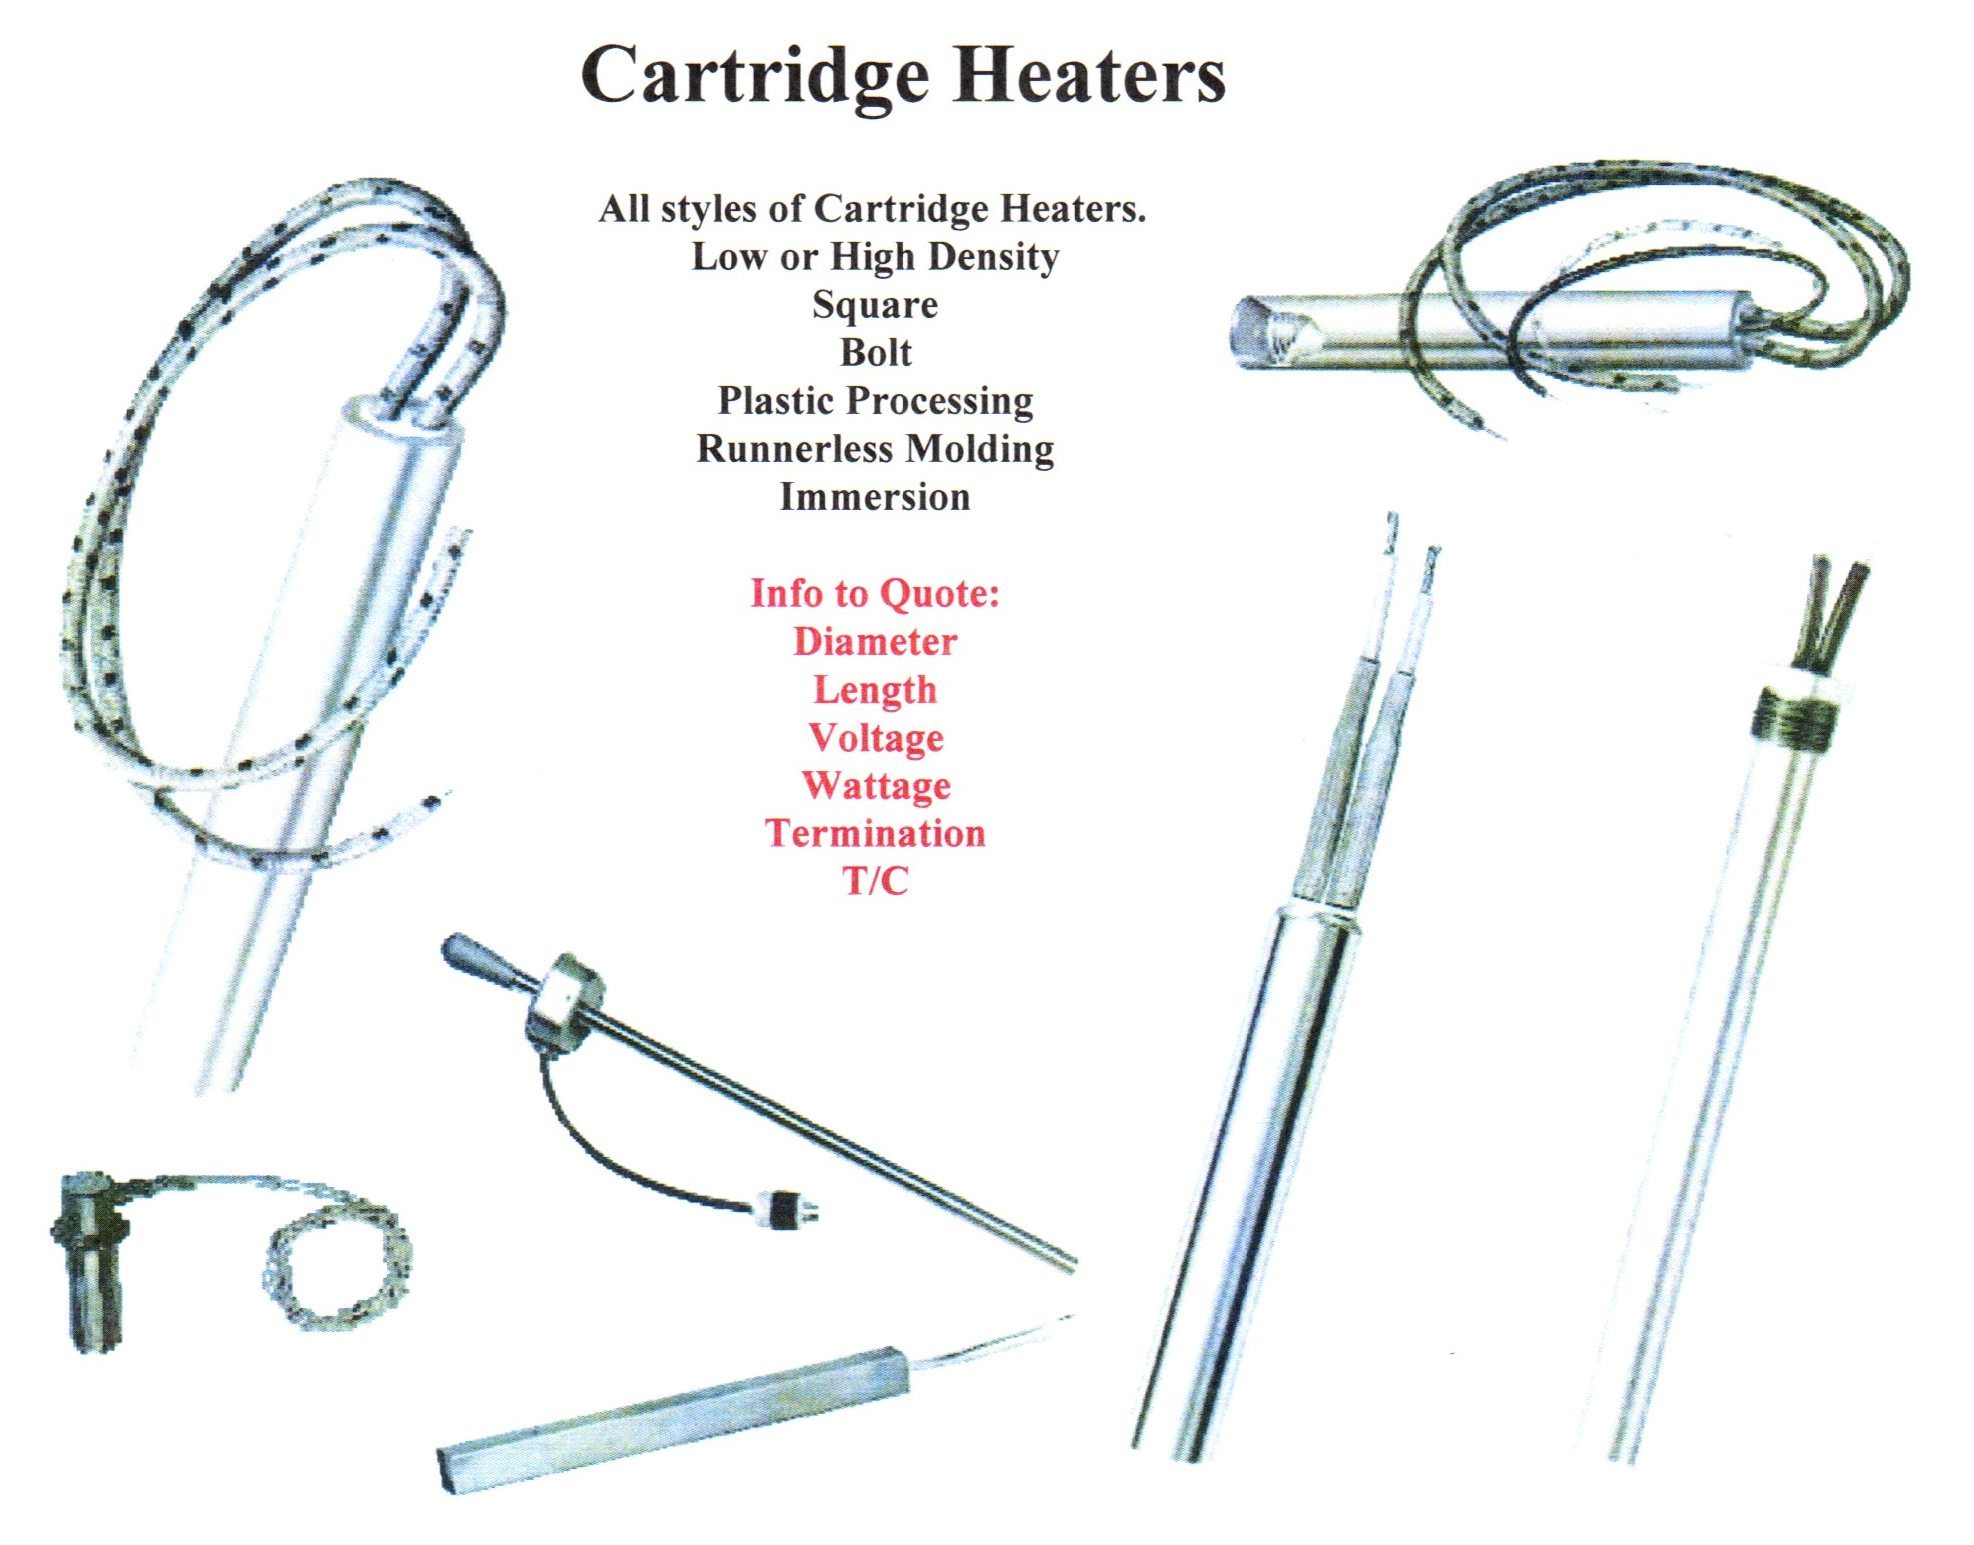 Cartridge Heaters